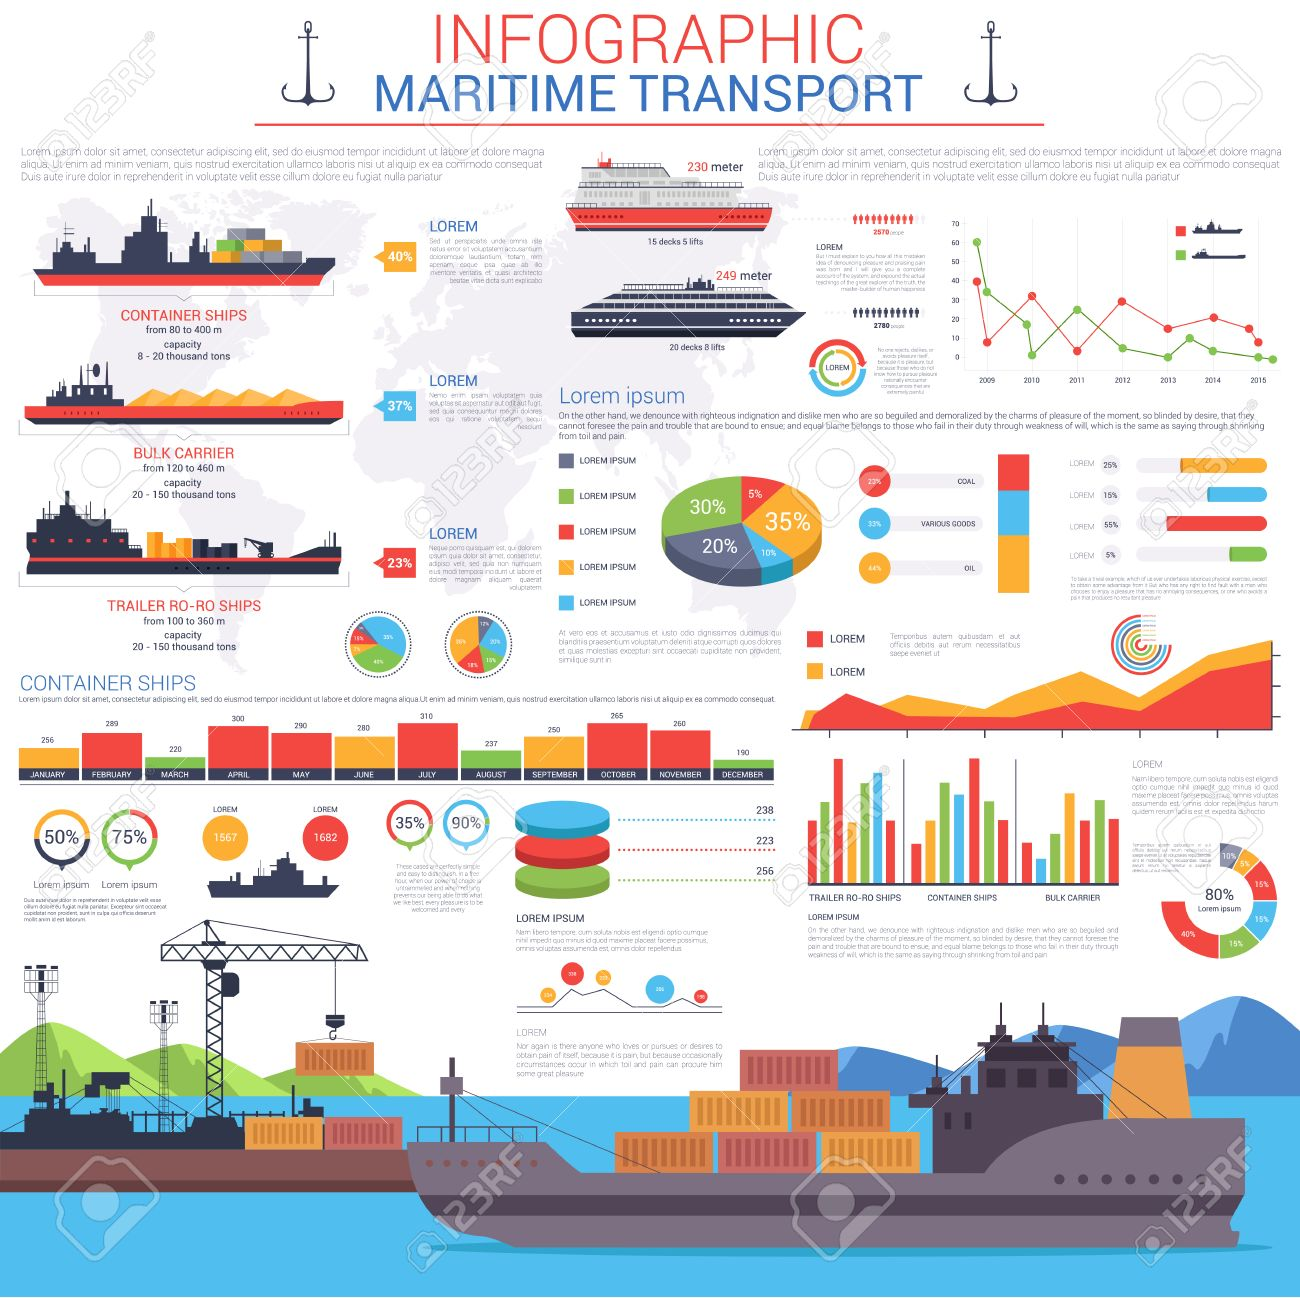 Maritime or nautical transportation infographic template. Ships with cargo or goods shipping containers to sea or ocean port or harbour visualization with linear and circle, bar charts - 58704155